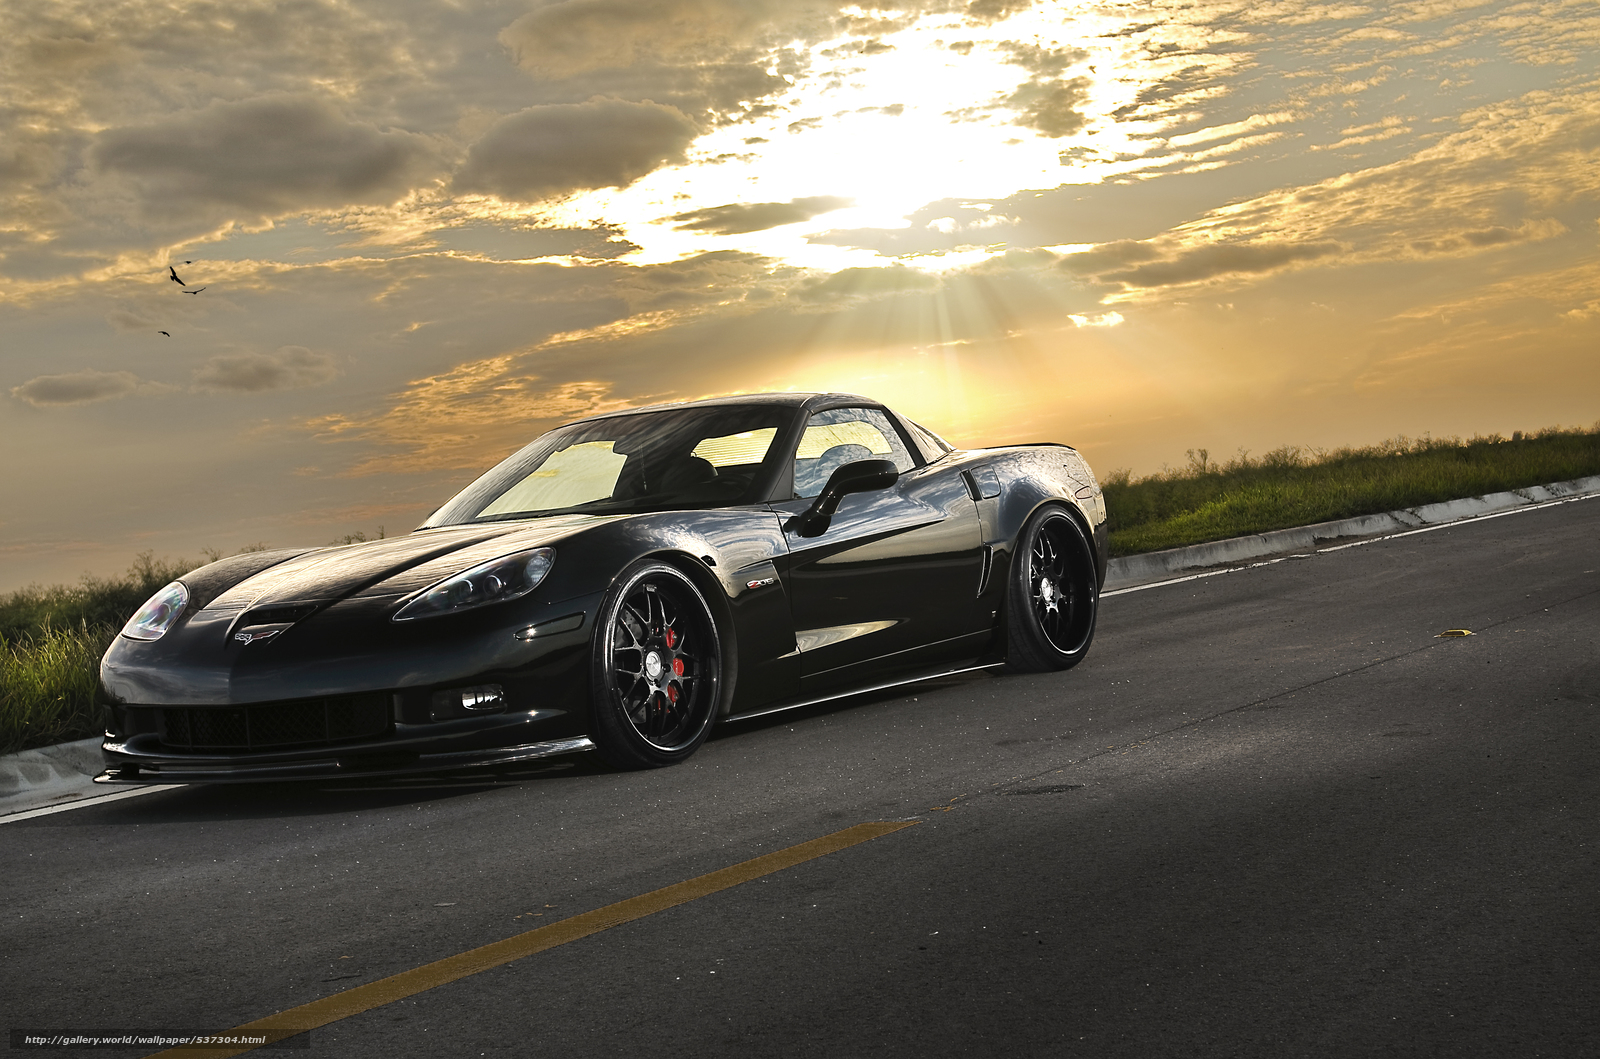 Download wallpaper 360 forged chevrolet corvette z06 free desktop wallpaper in the resolution 4288x2838 picture 537304